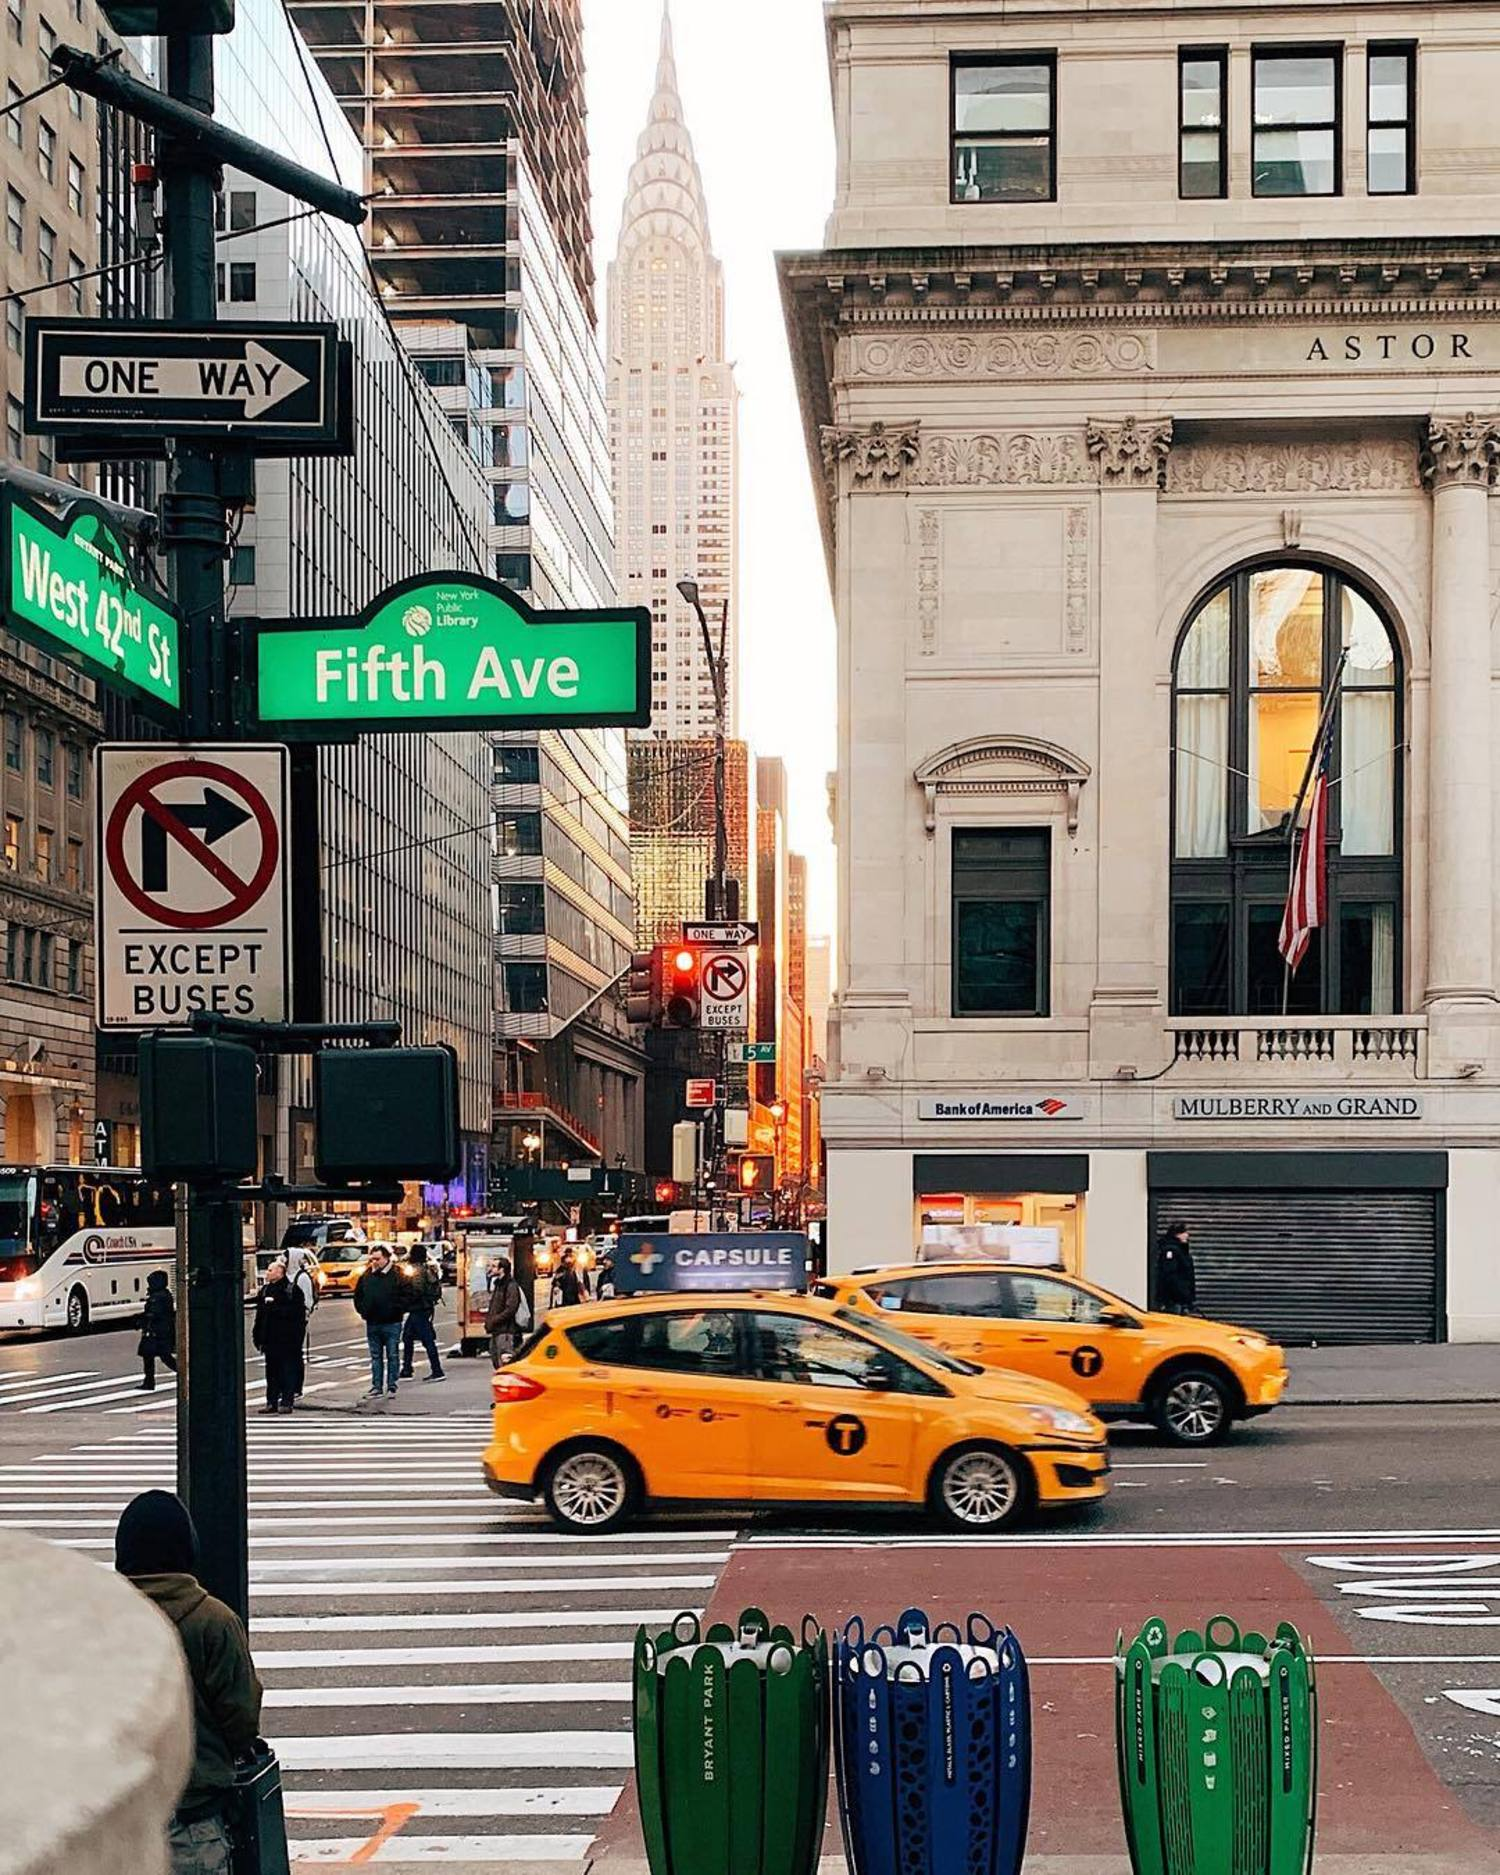 5th Avenue and 42nd Street, Midtown, Manhattan